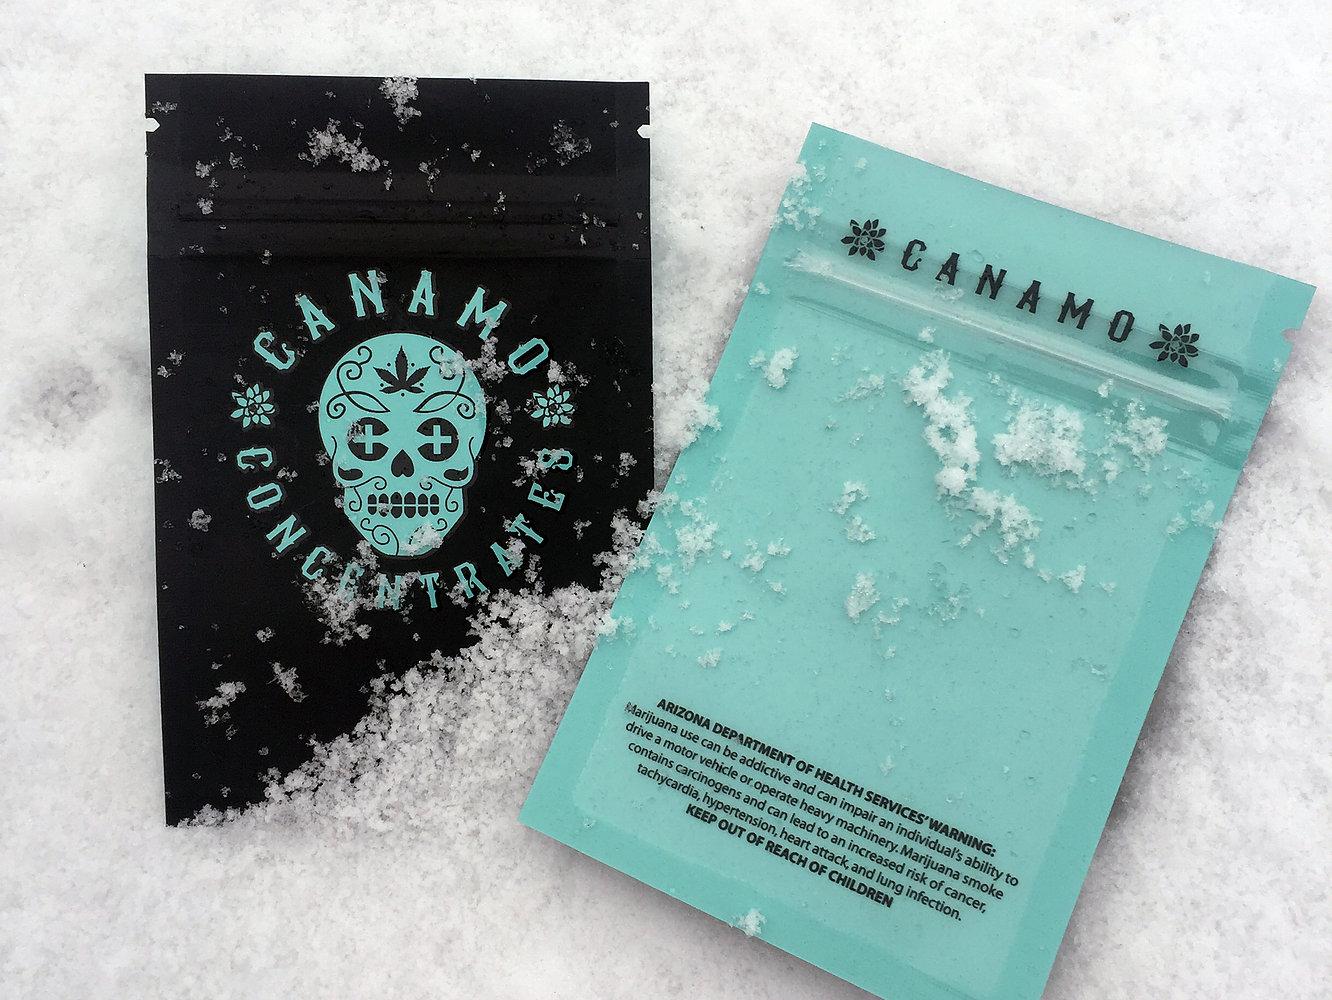 Canamo packaging